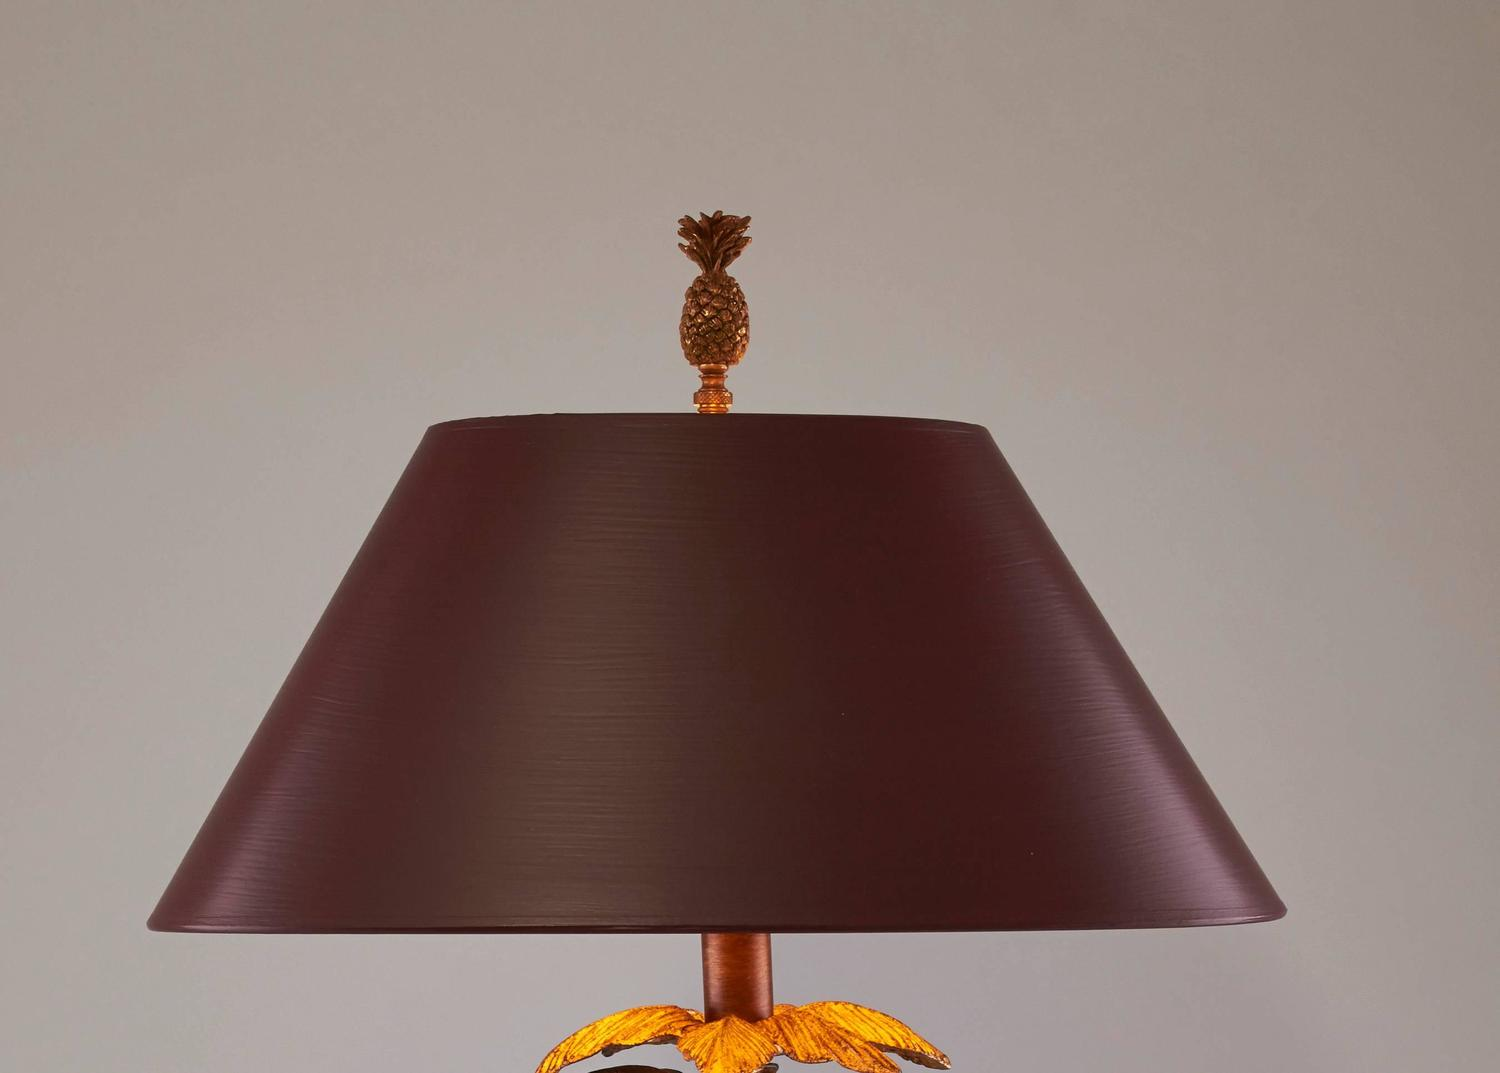 Pair Of Frederick Cooper Monkey Table Lamp For Sale At 1stdibs